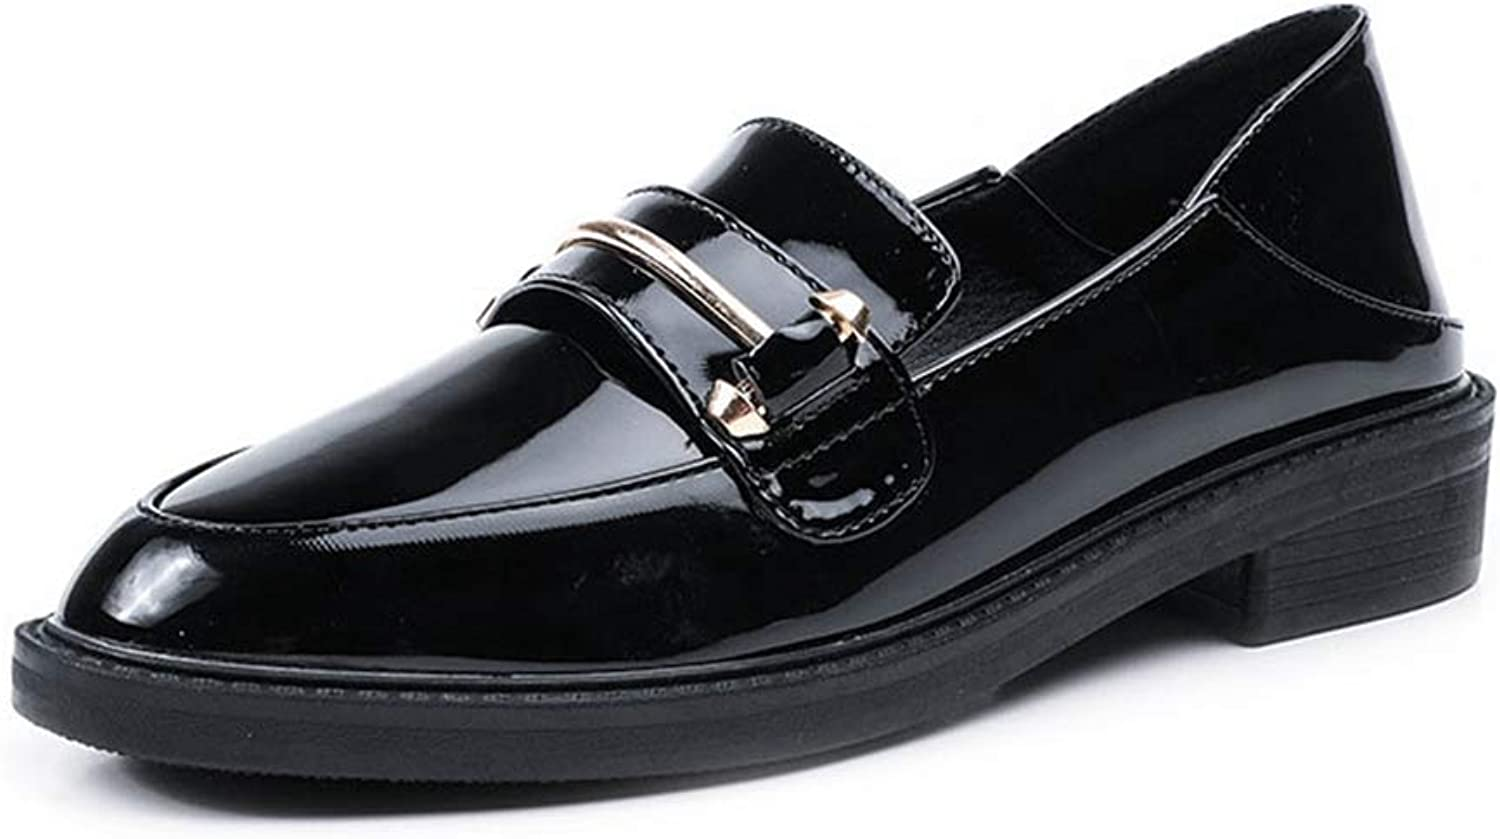 F-OXMY Women's Retro Penny Loafers Low Heels Casual shoes Round Toe Shiny Slip-On Oxfords shoes